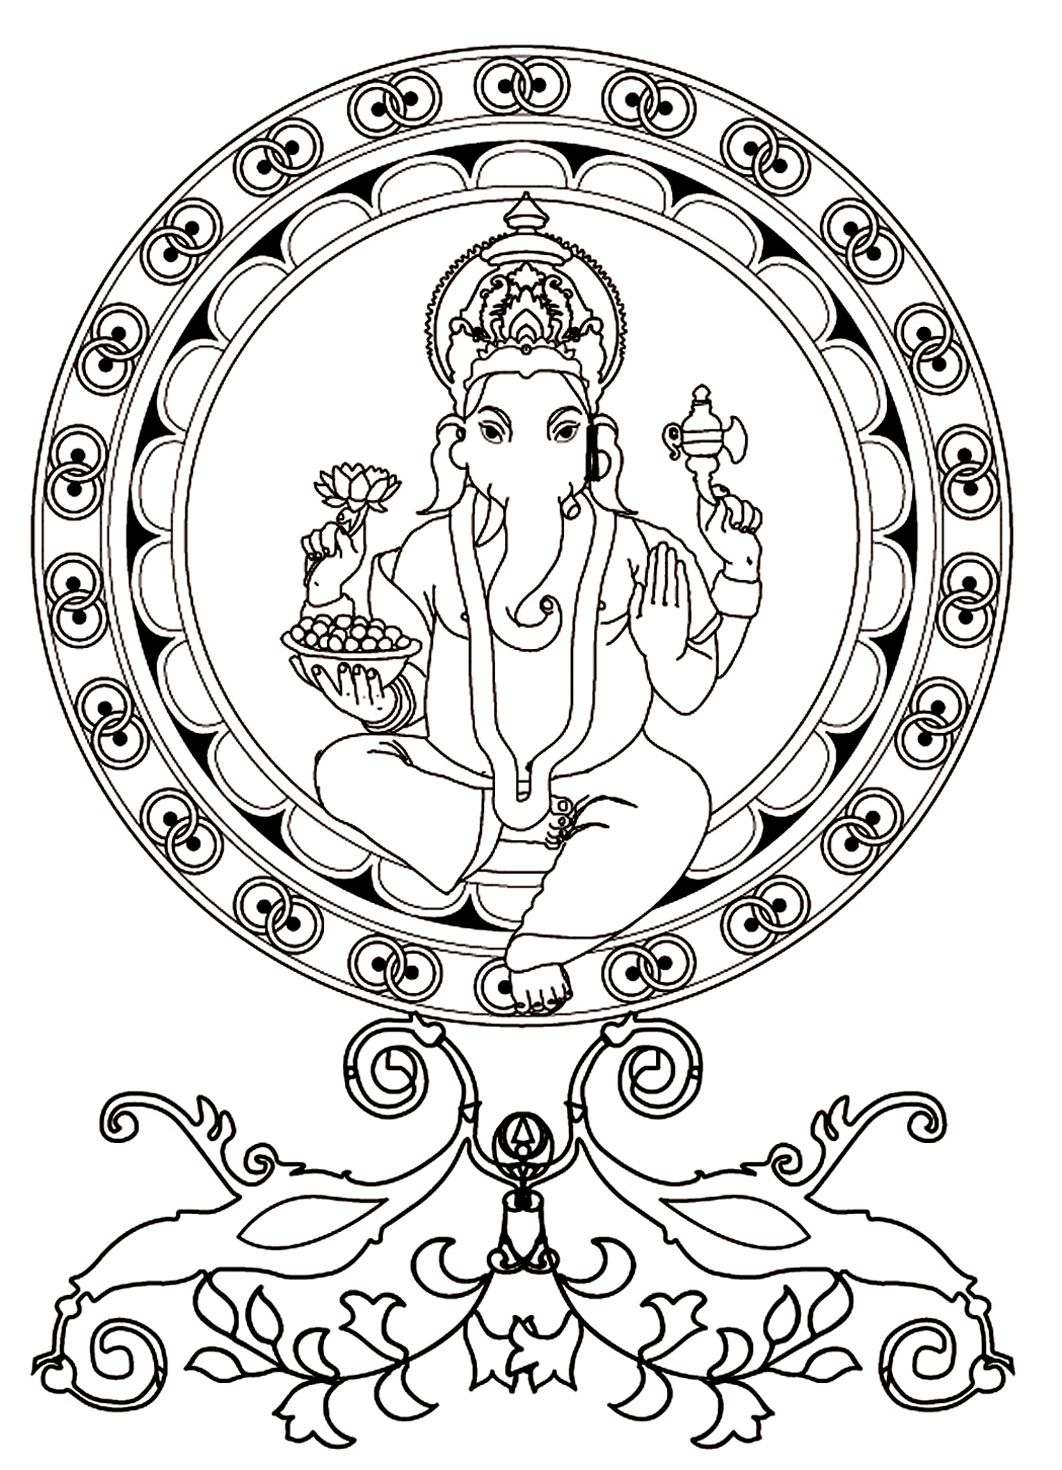 Free Coloring Page Coloring-adult-ganesh The Hindu Deity